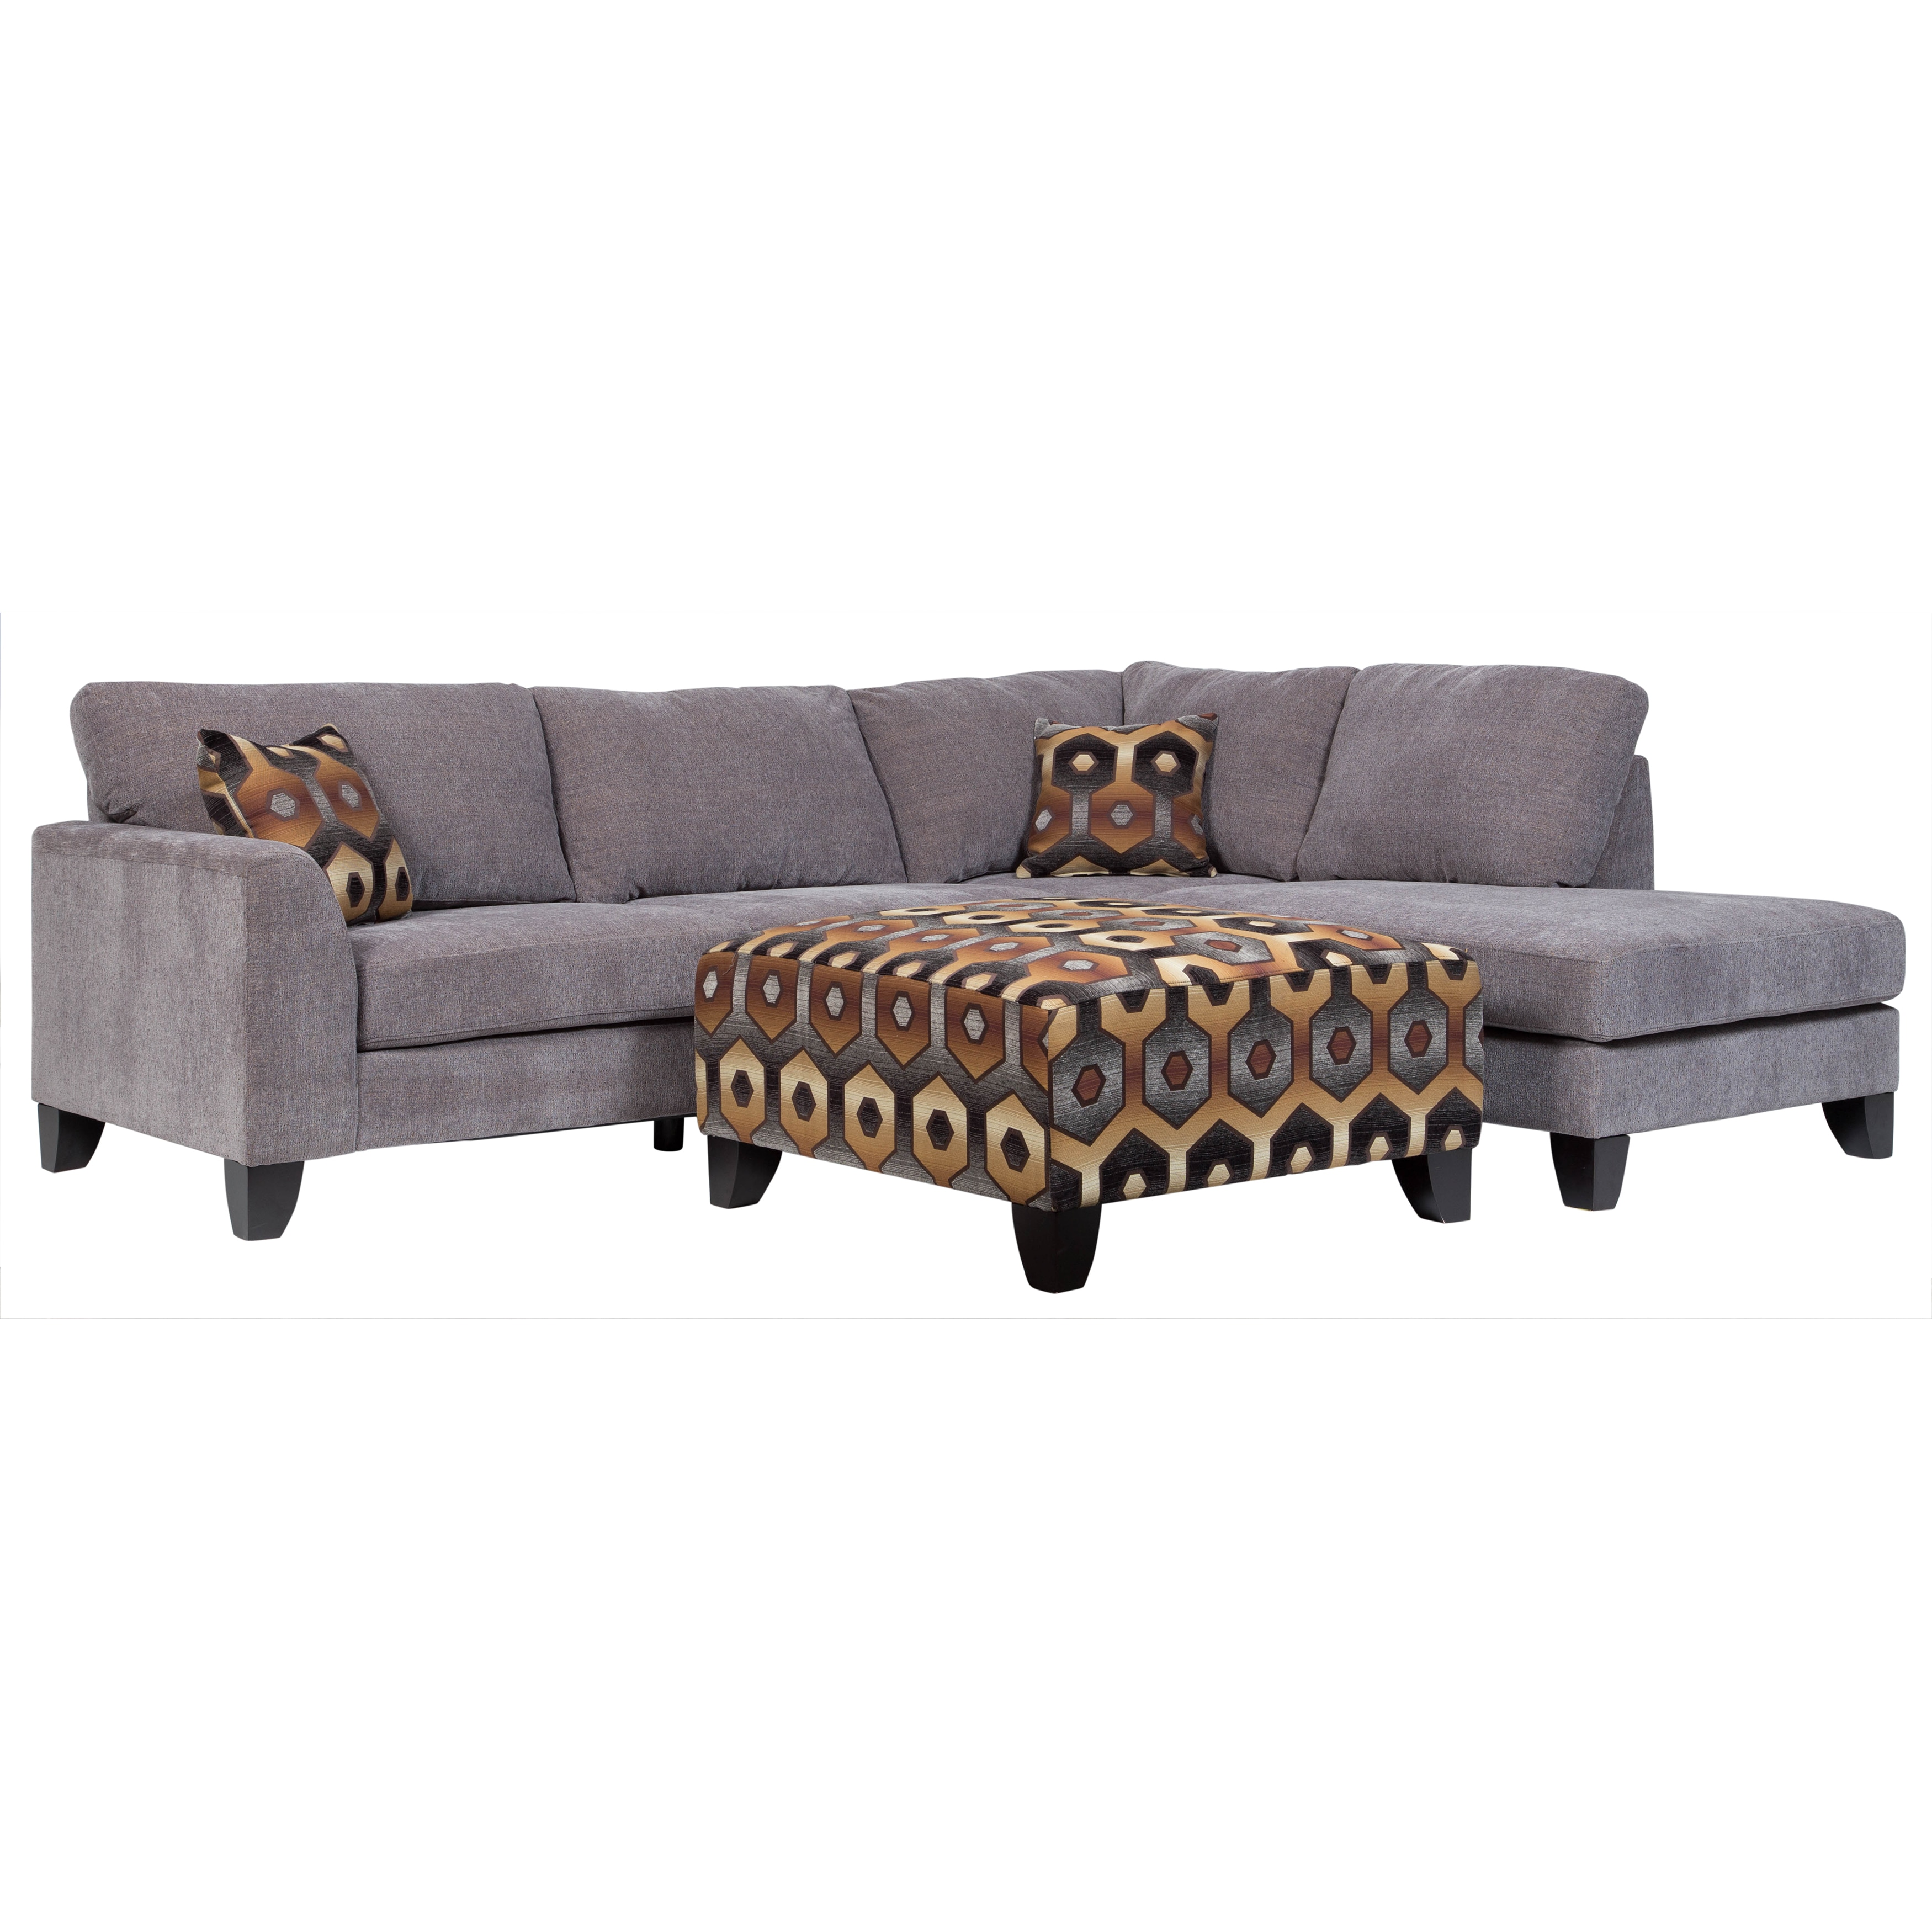 for sofas large taupe decorating touch l rhmountbaldybrewingcom living couch tremendous lovely sectional lovesac oversized used trends attachment sactionals rhtouchofmoderncom sactional using